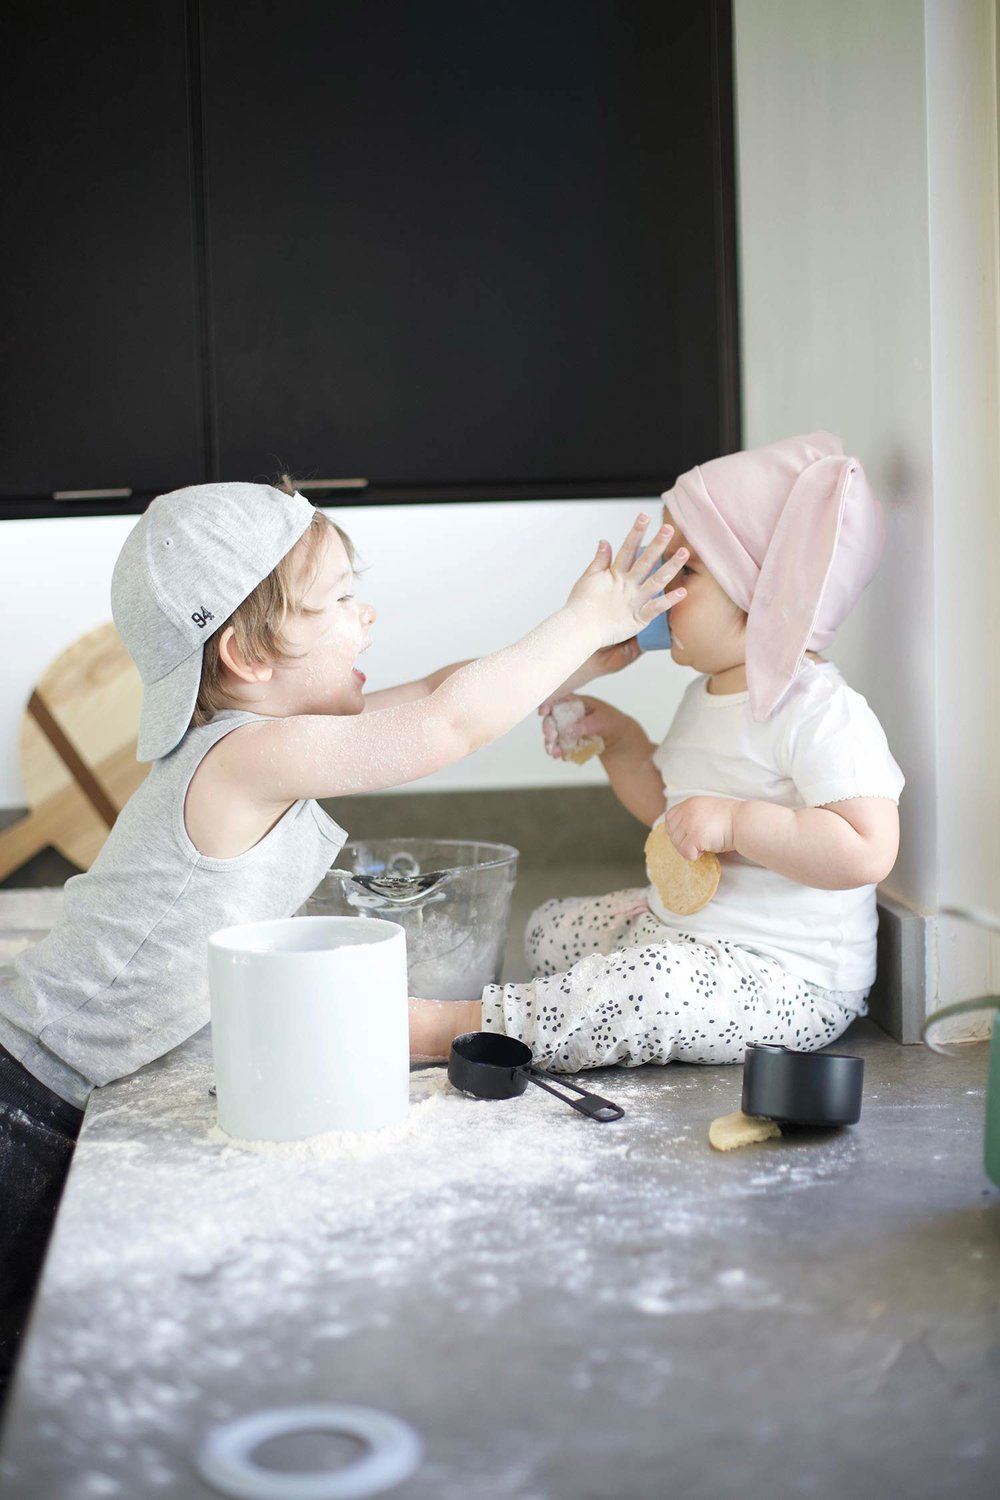 boy and girl baking